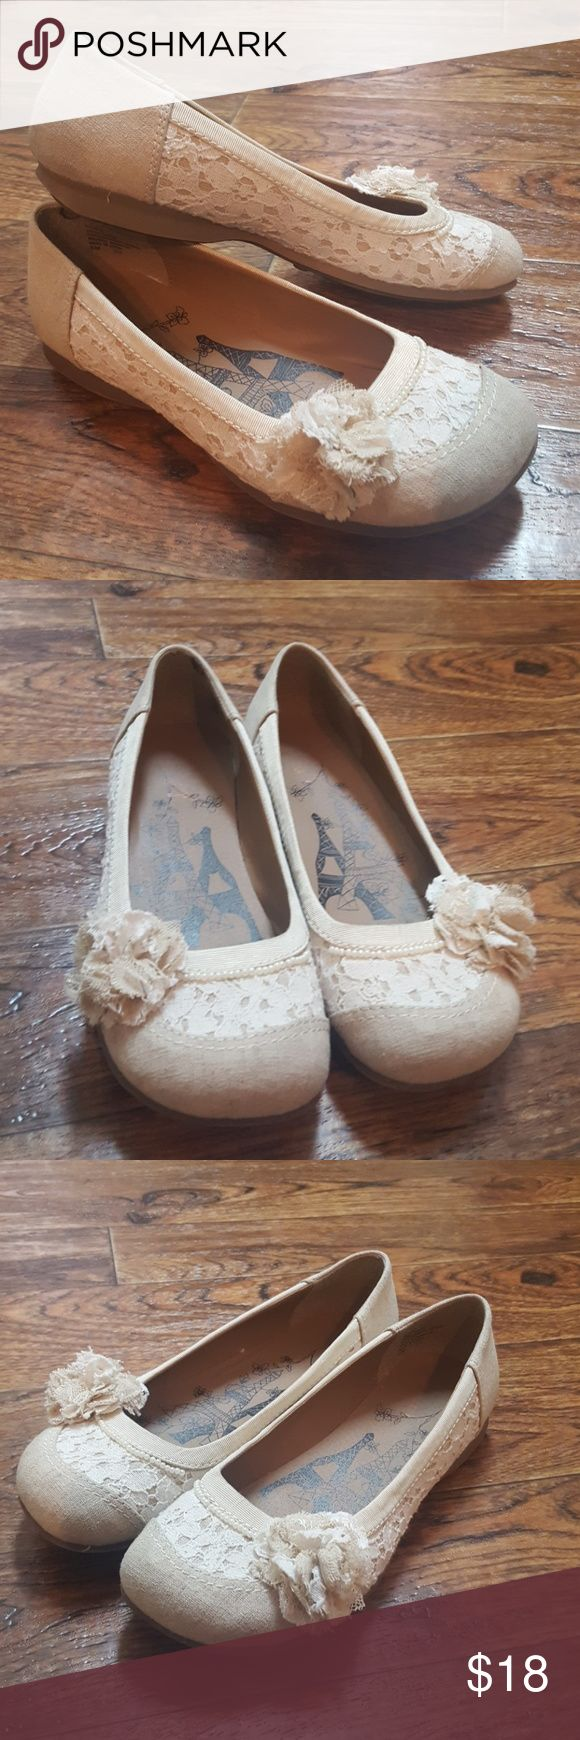 Jellypop Lace Ballet Flats JELLYPOP Women's Rope Shoes with pearls, lace, and burlap look-a-like. Worn once. Jellypop Shoes Flats & Loafers